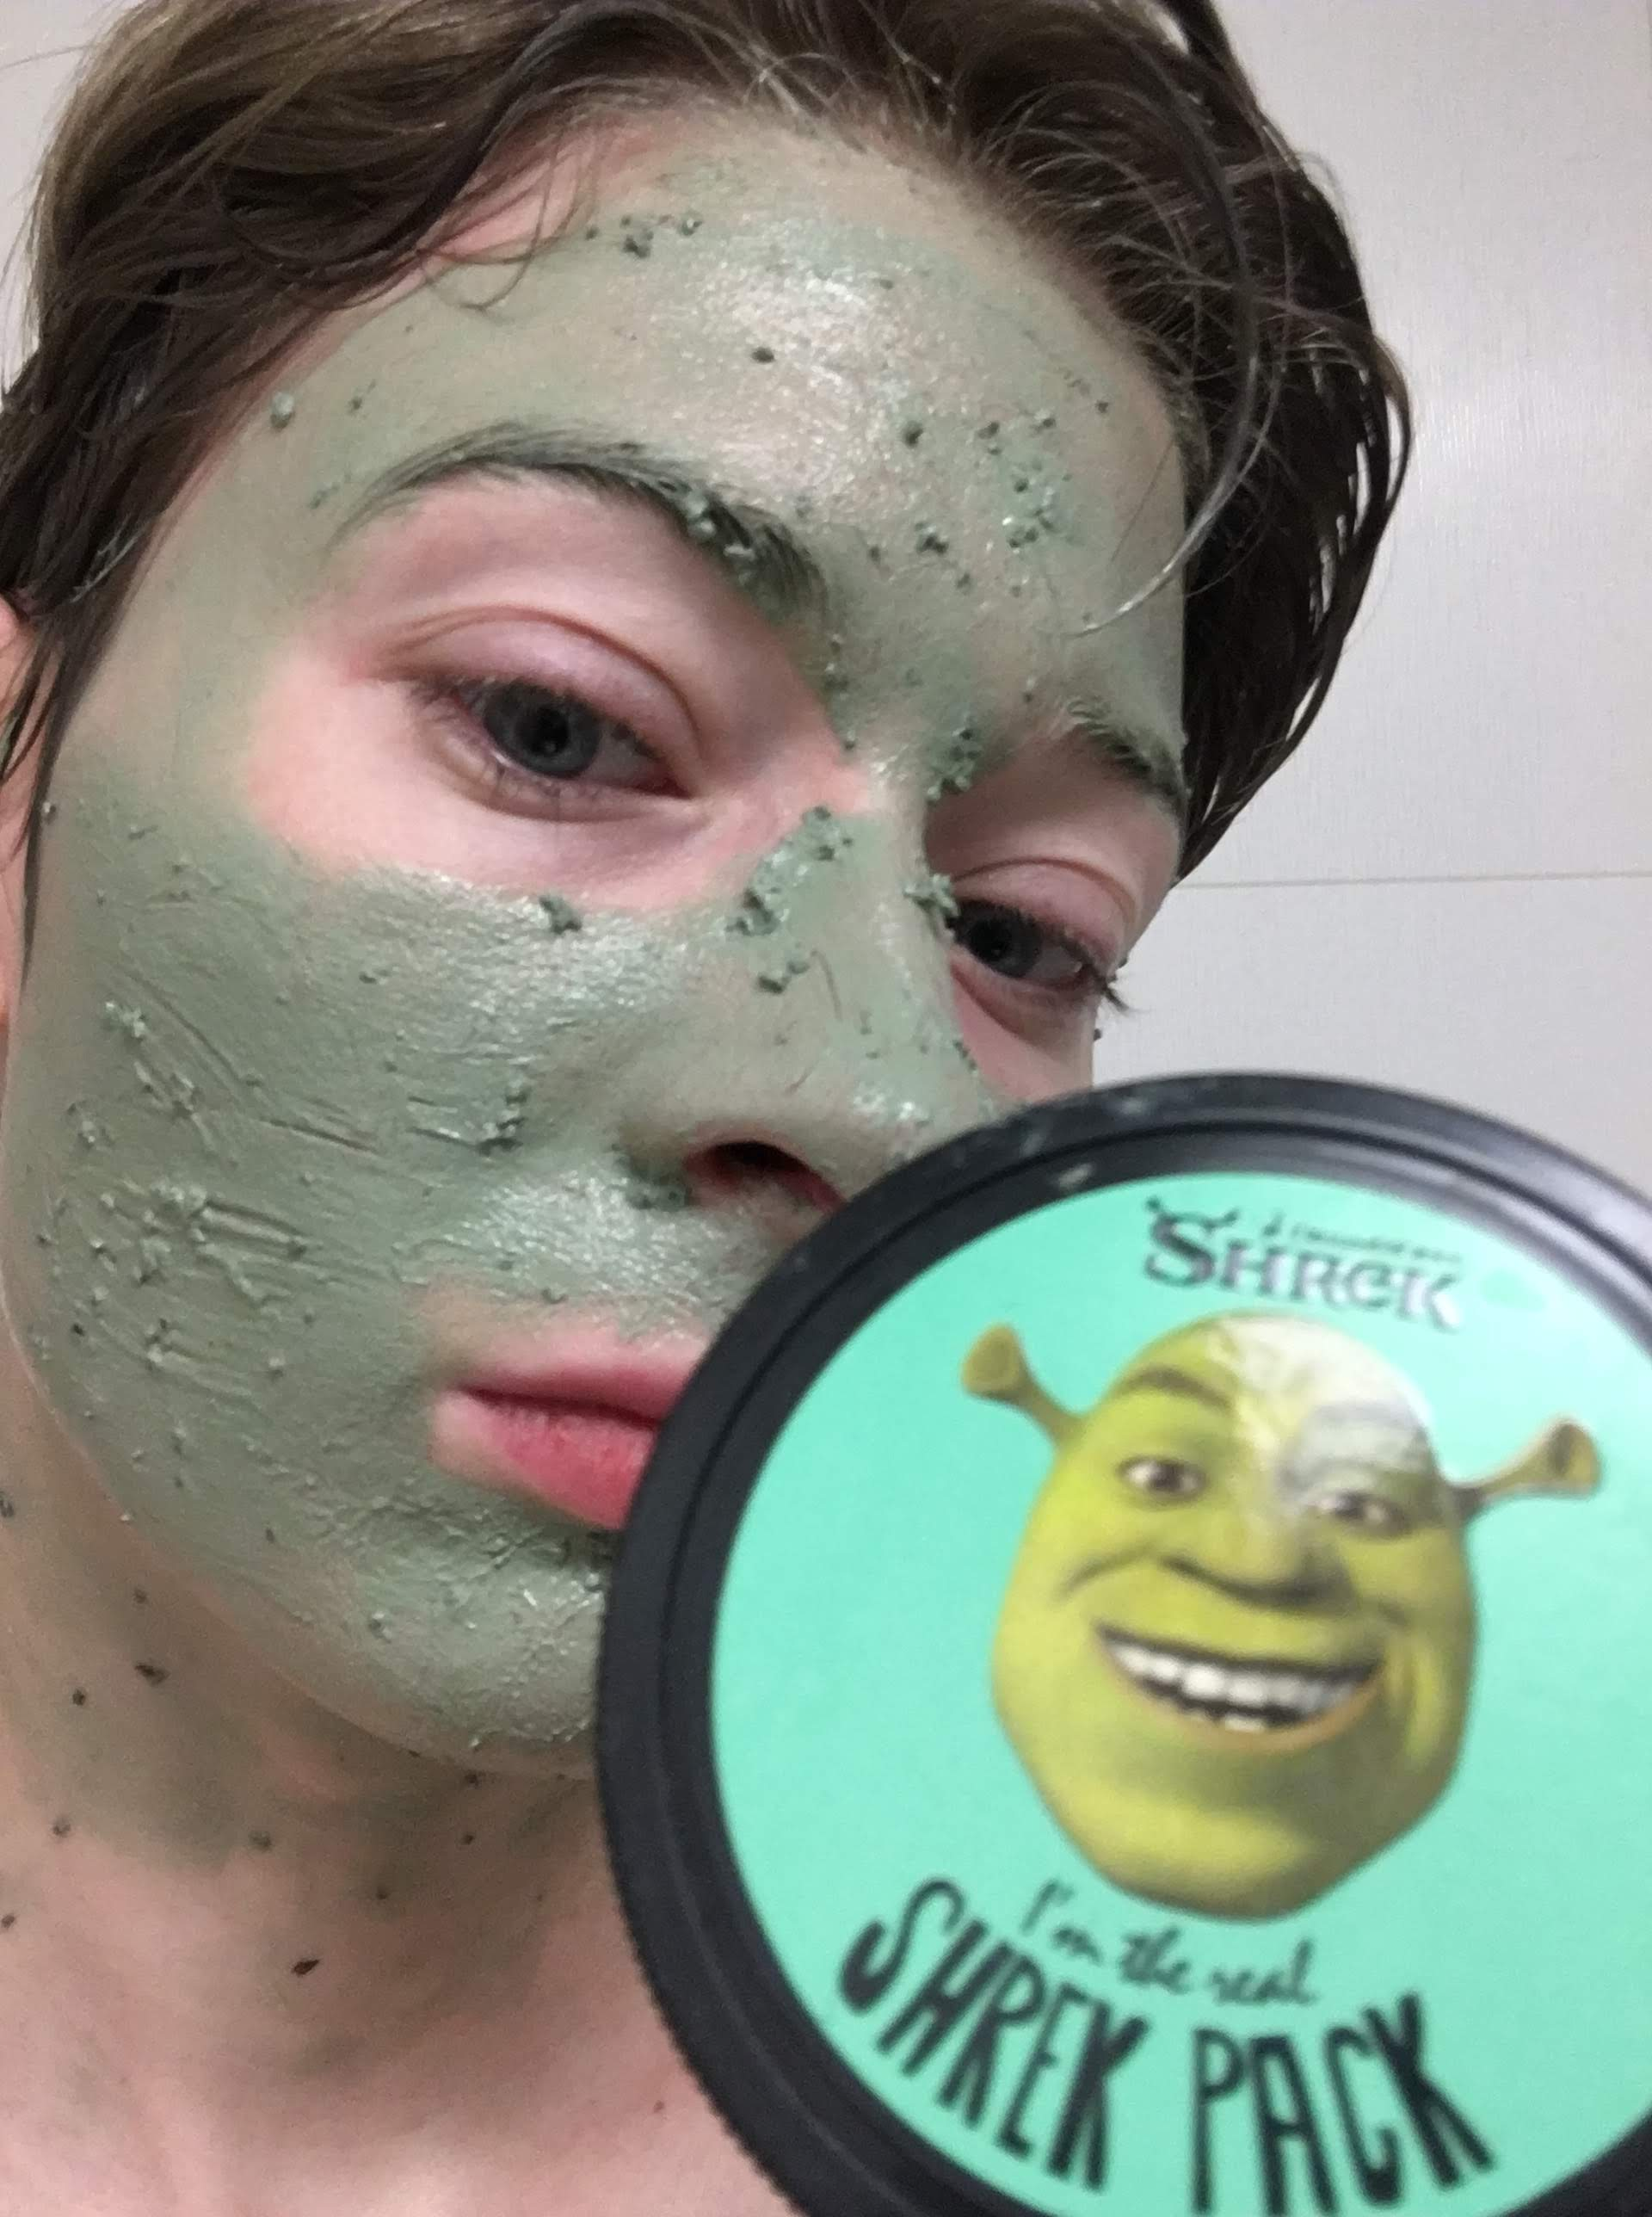 Shrek Face Masks Gimmicky Or The Real Deal The Empties Diaries